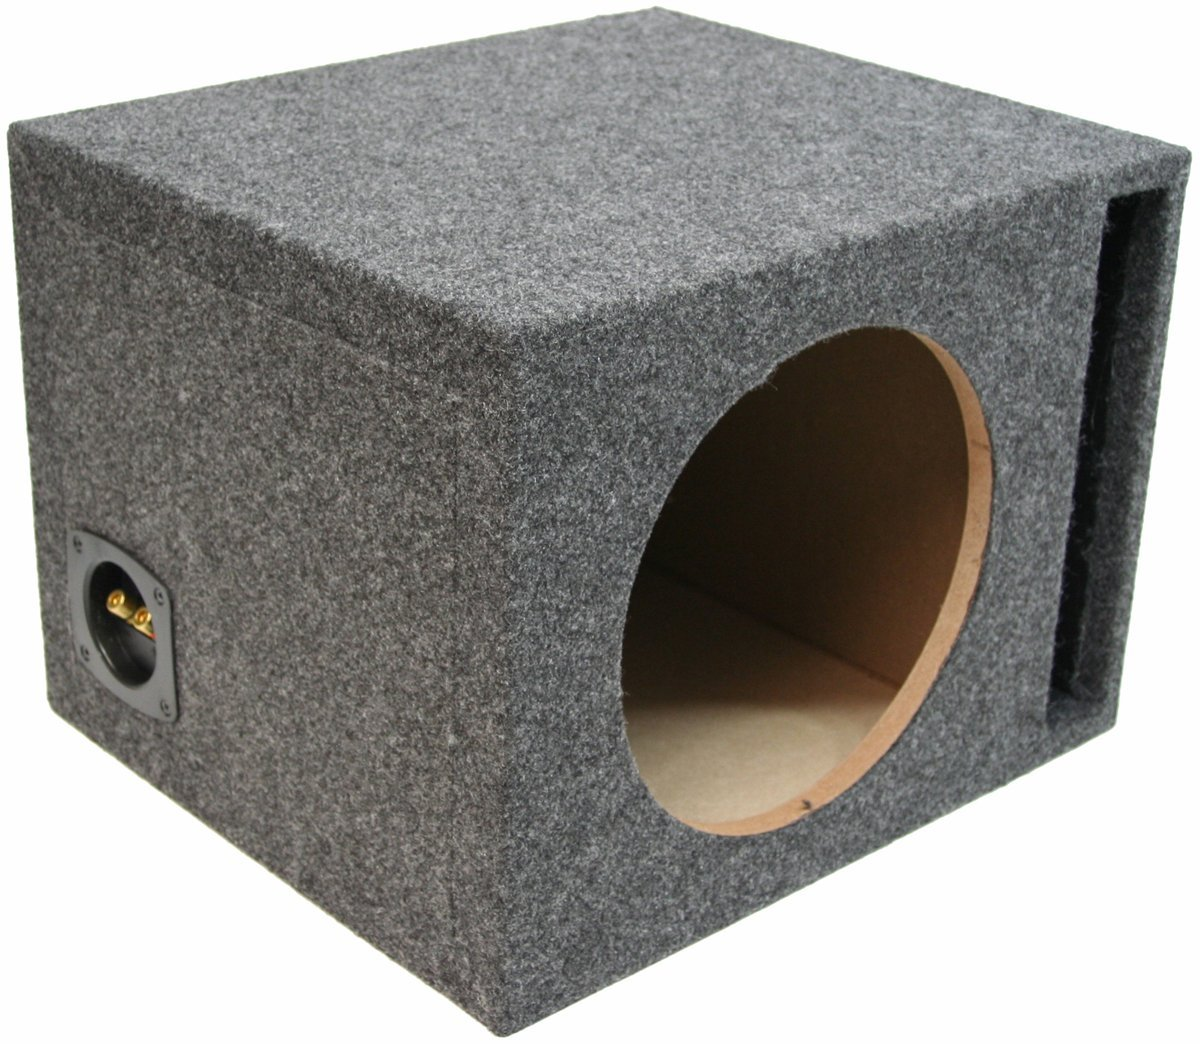 Car Audio Single 12'' Vented Subwoofer Stereo Sub Box Ported Enclosure 5/8'' MDF by American Sound Connection